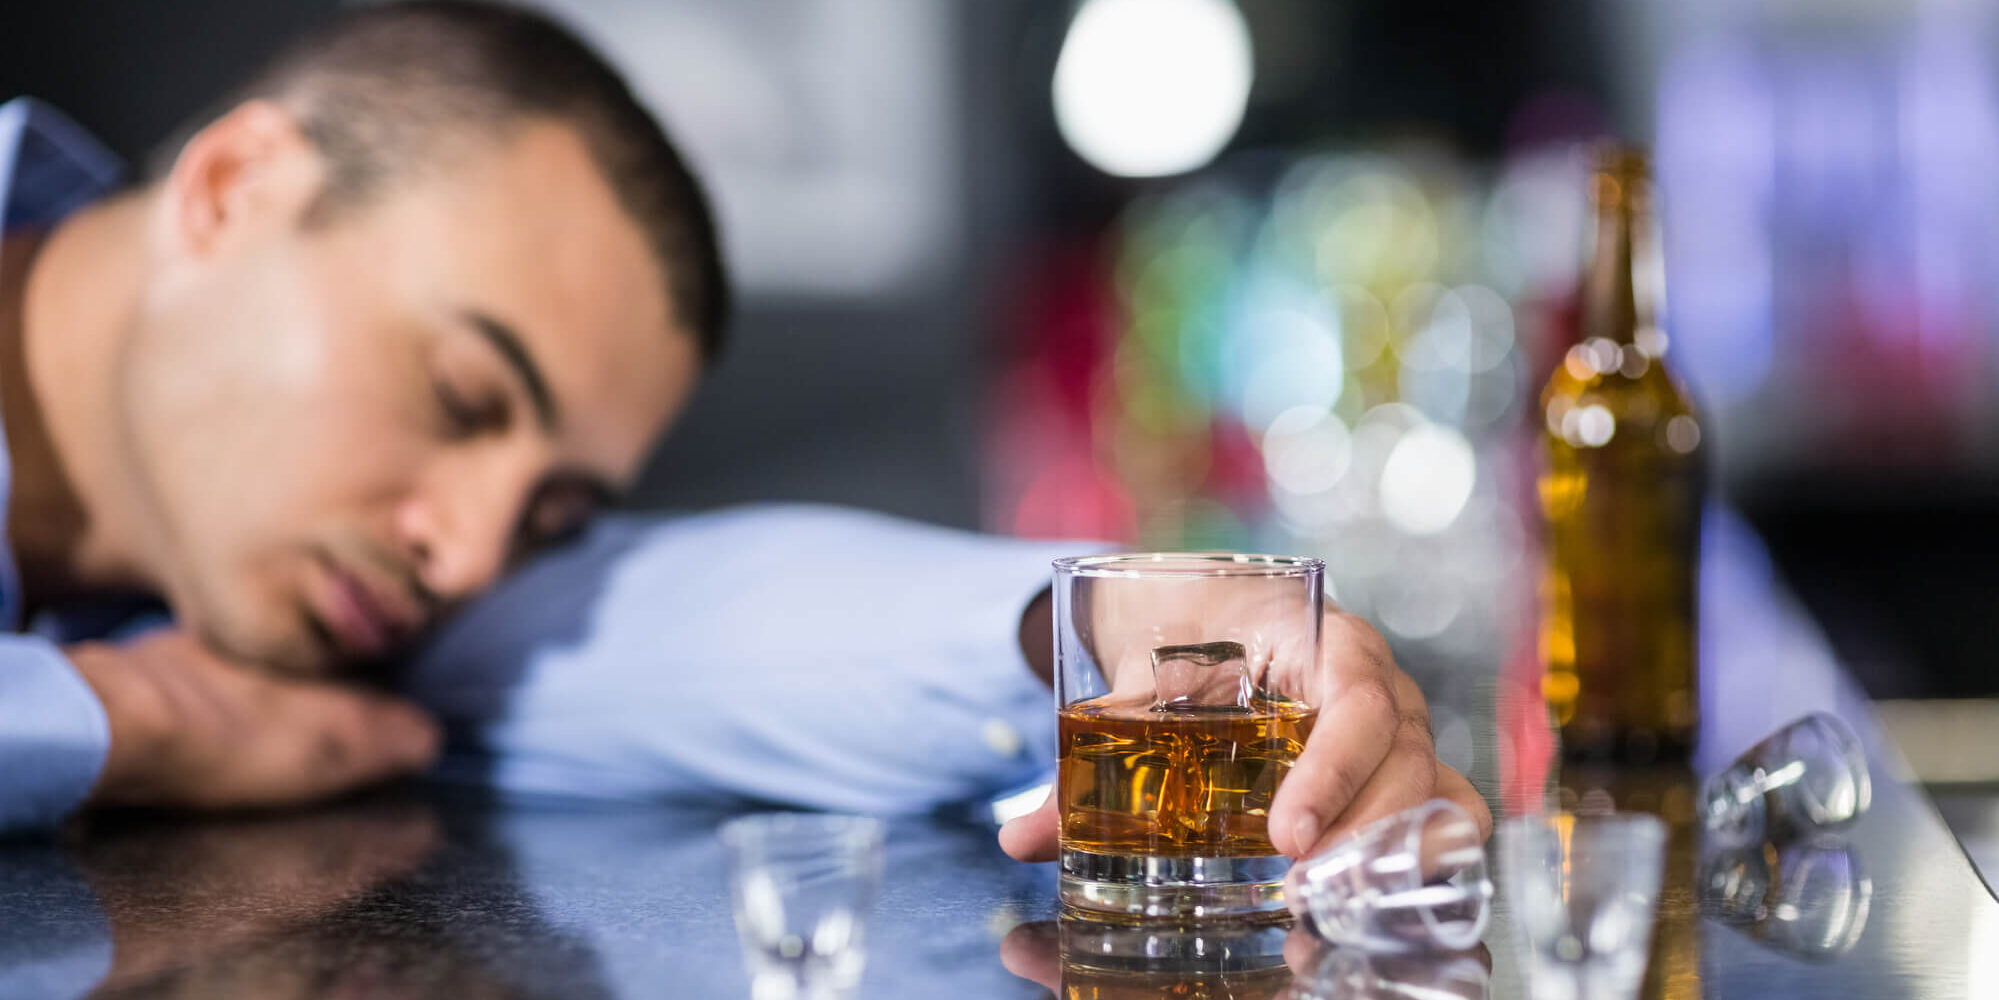 Man asleep at bar drinking whiskey to illustrate use of alcohol as a dysfunctional coping mode used to distract and numb feelings that people do not wish to deal with.